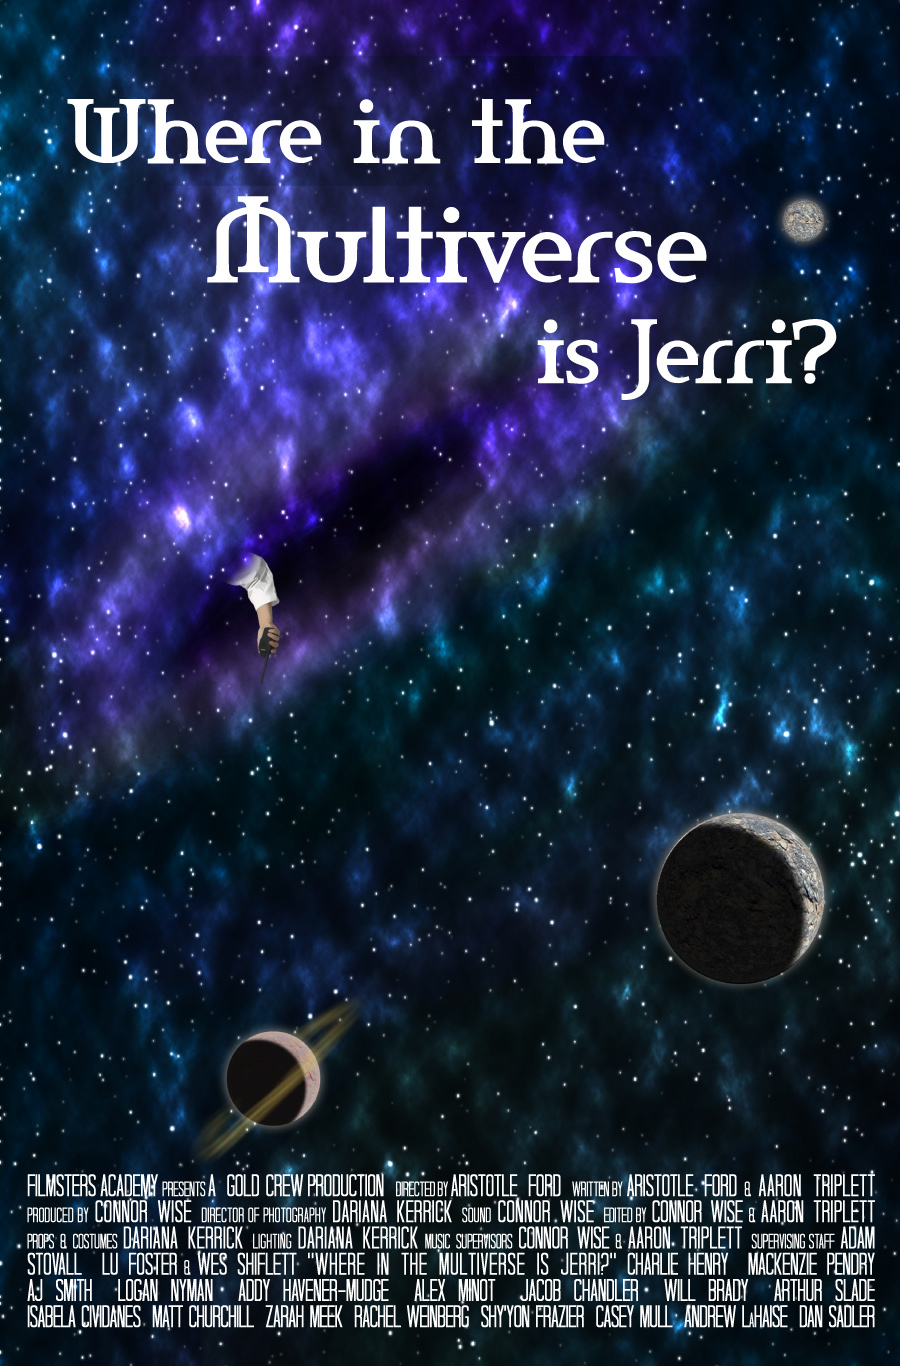 Where in the Multiverse is Jerri